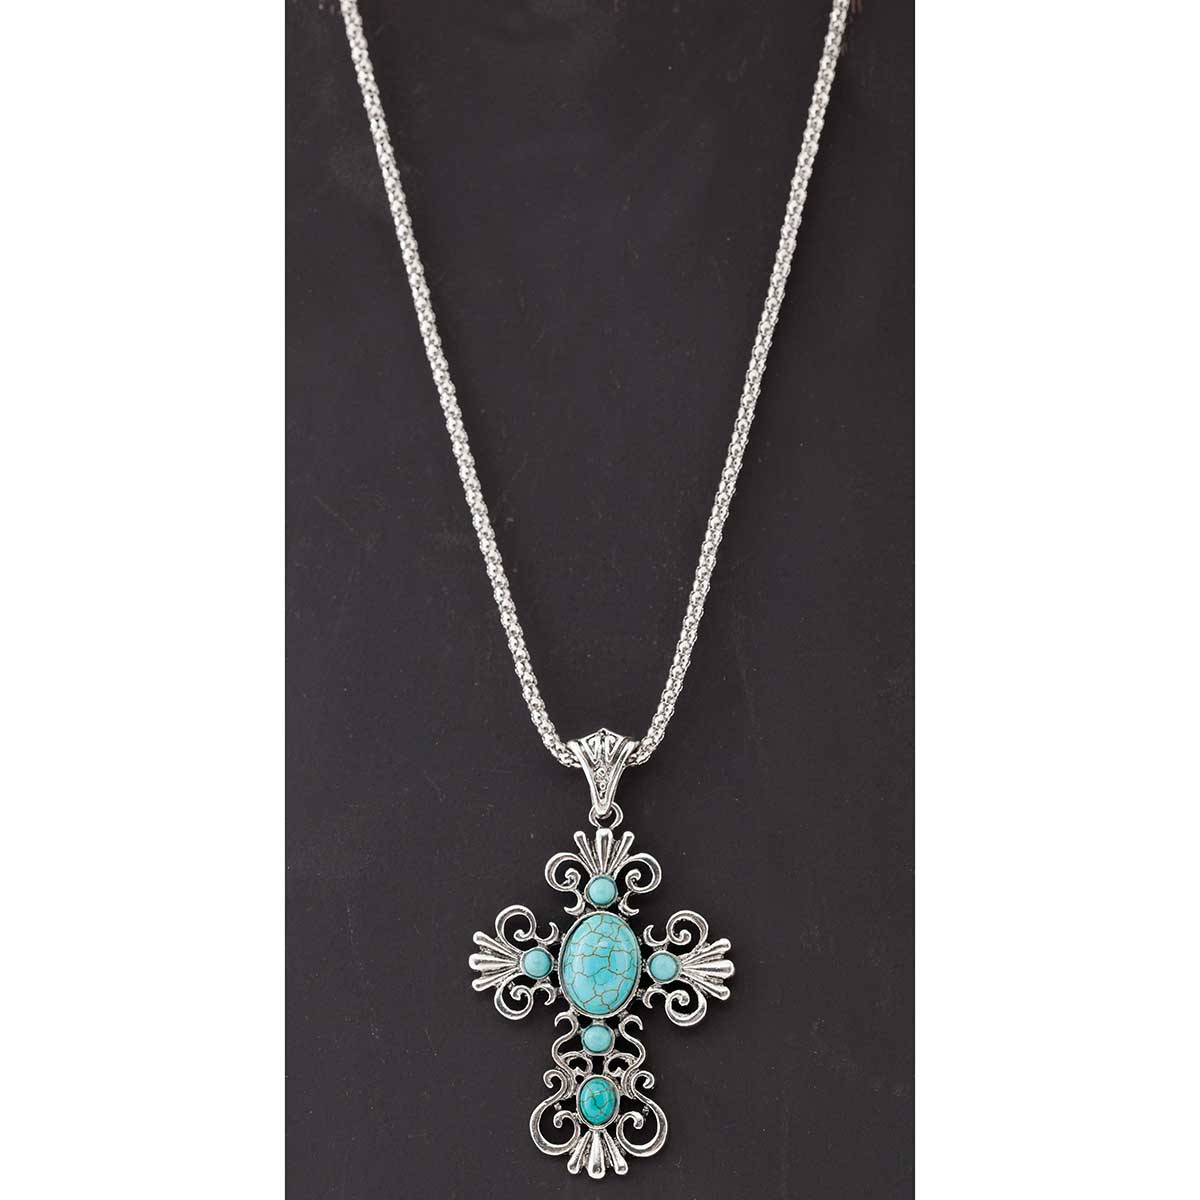 Antique Silver and Turquoise Cross Necklace